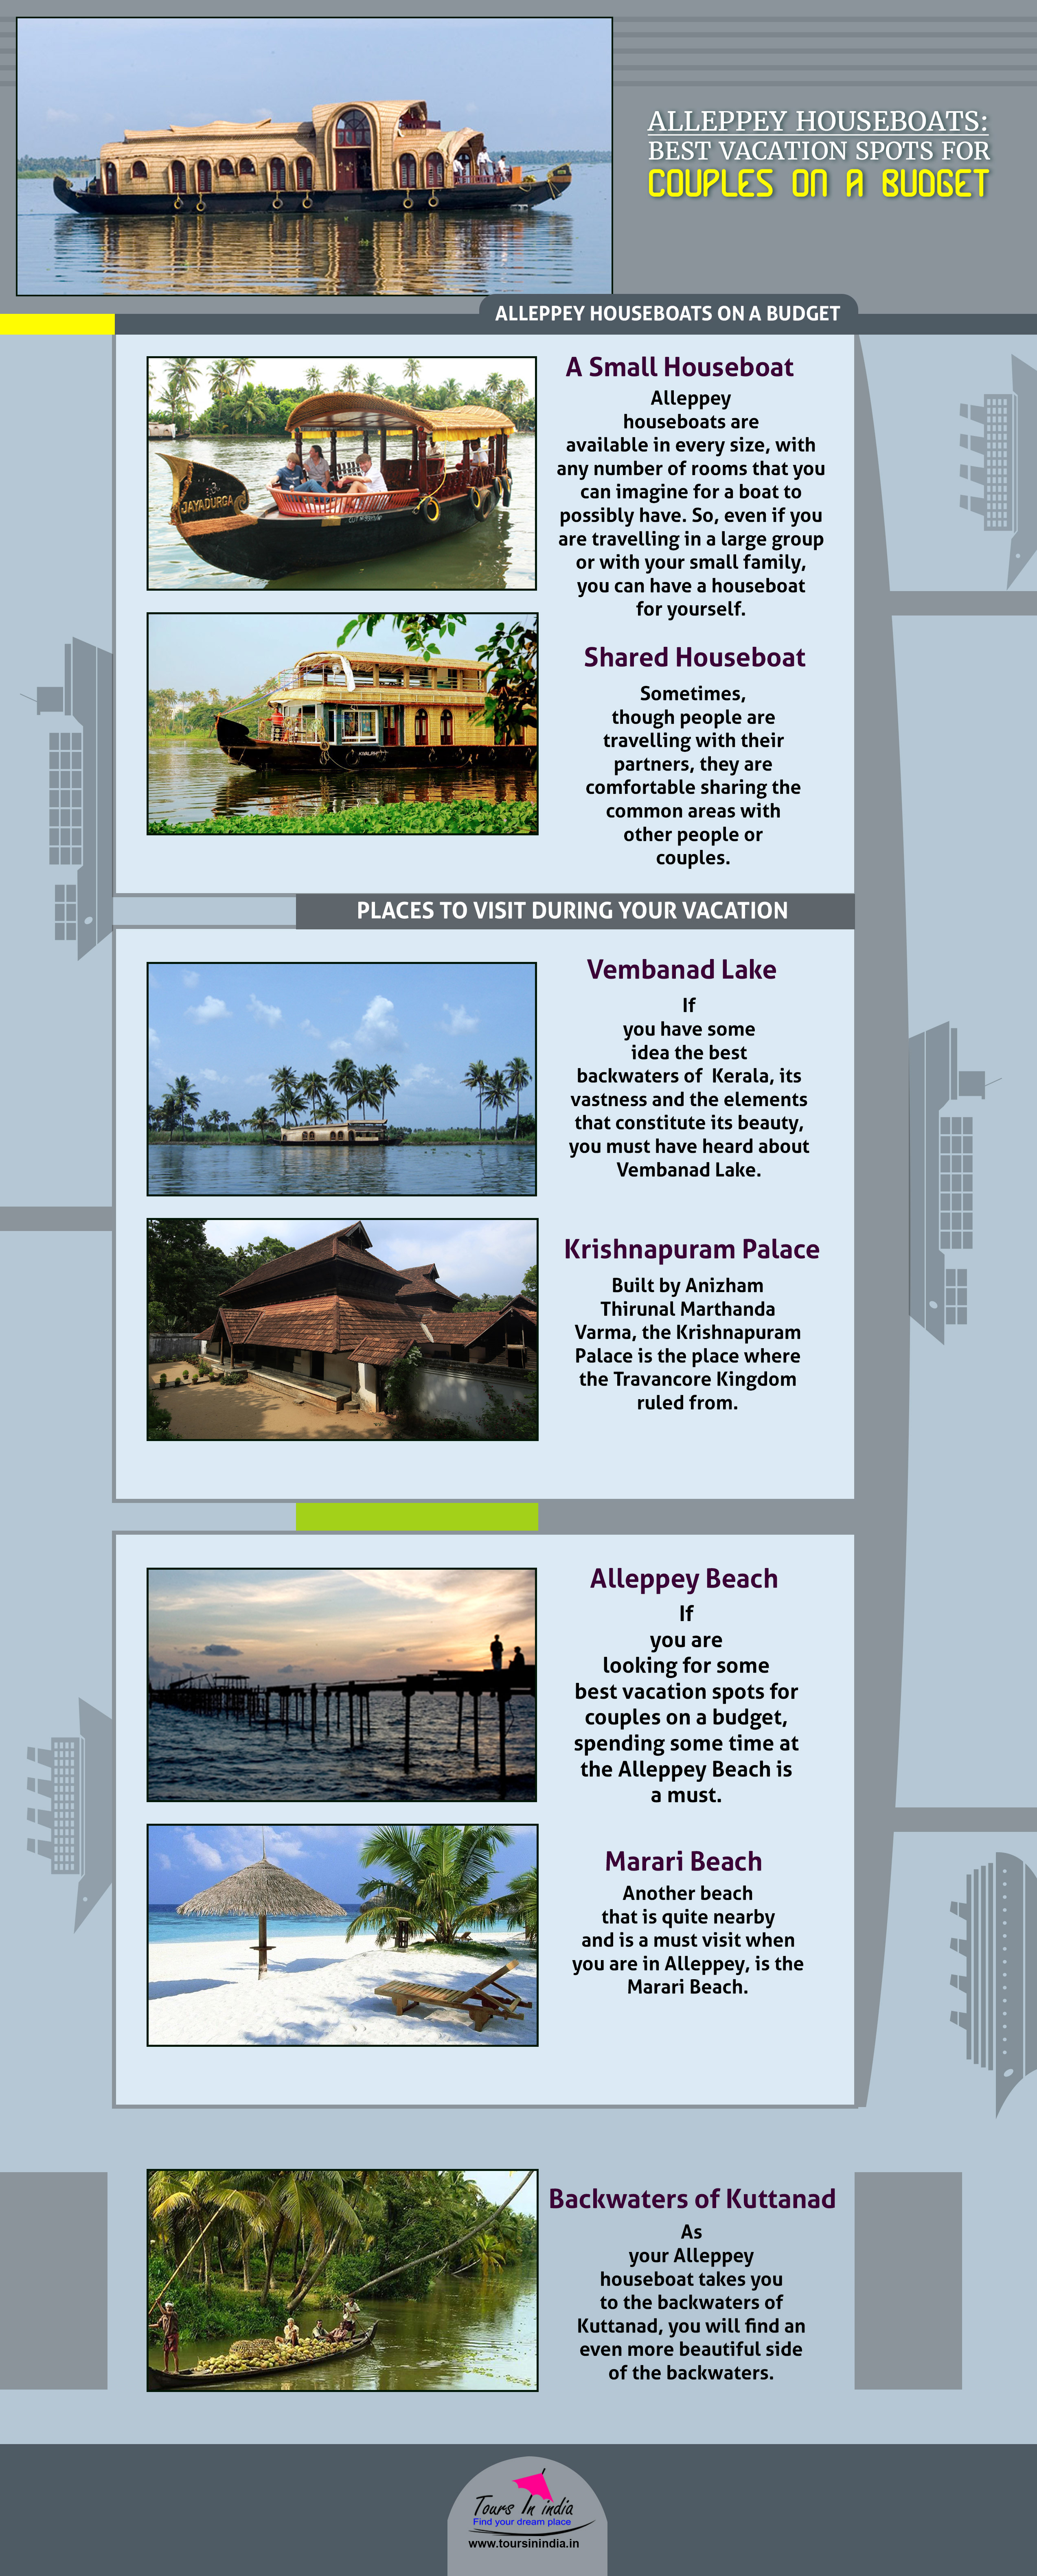 ALLEPPEY HOUSEBOATS: BEST VACATION SPOTS FOR COUPLES ON A BUDGET